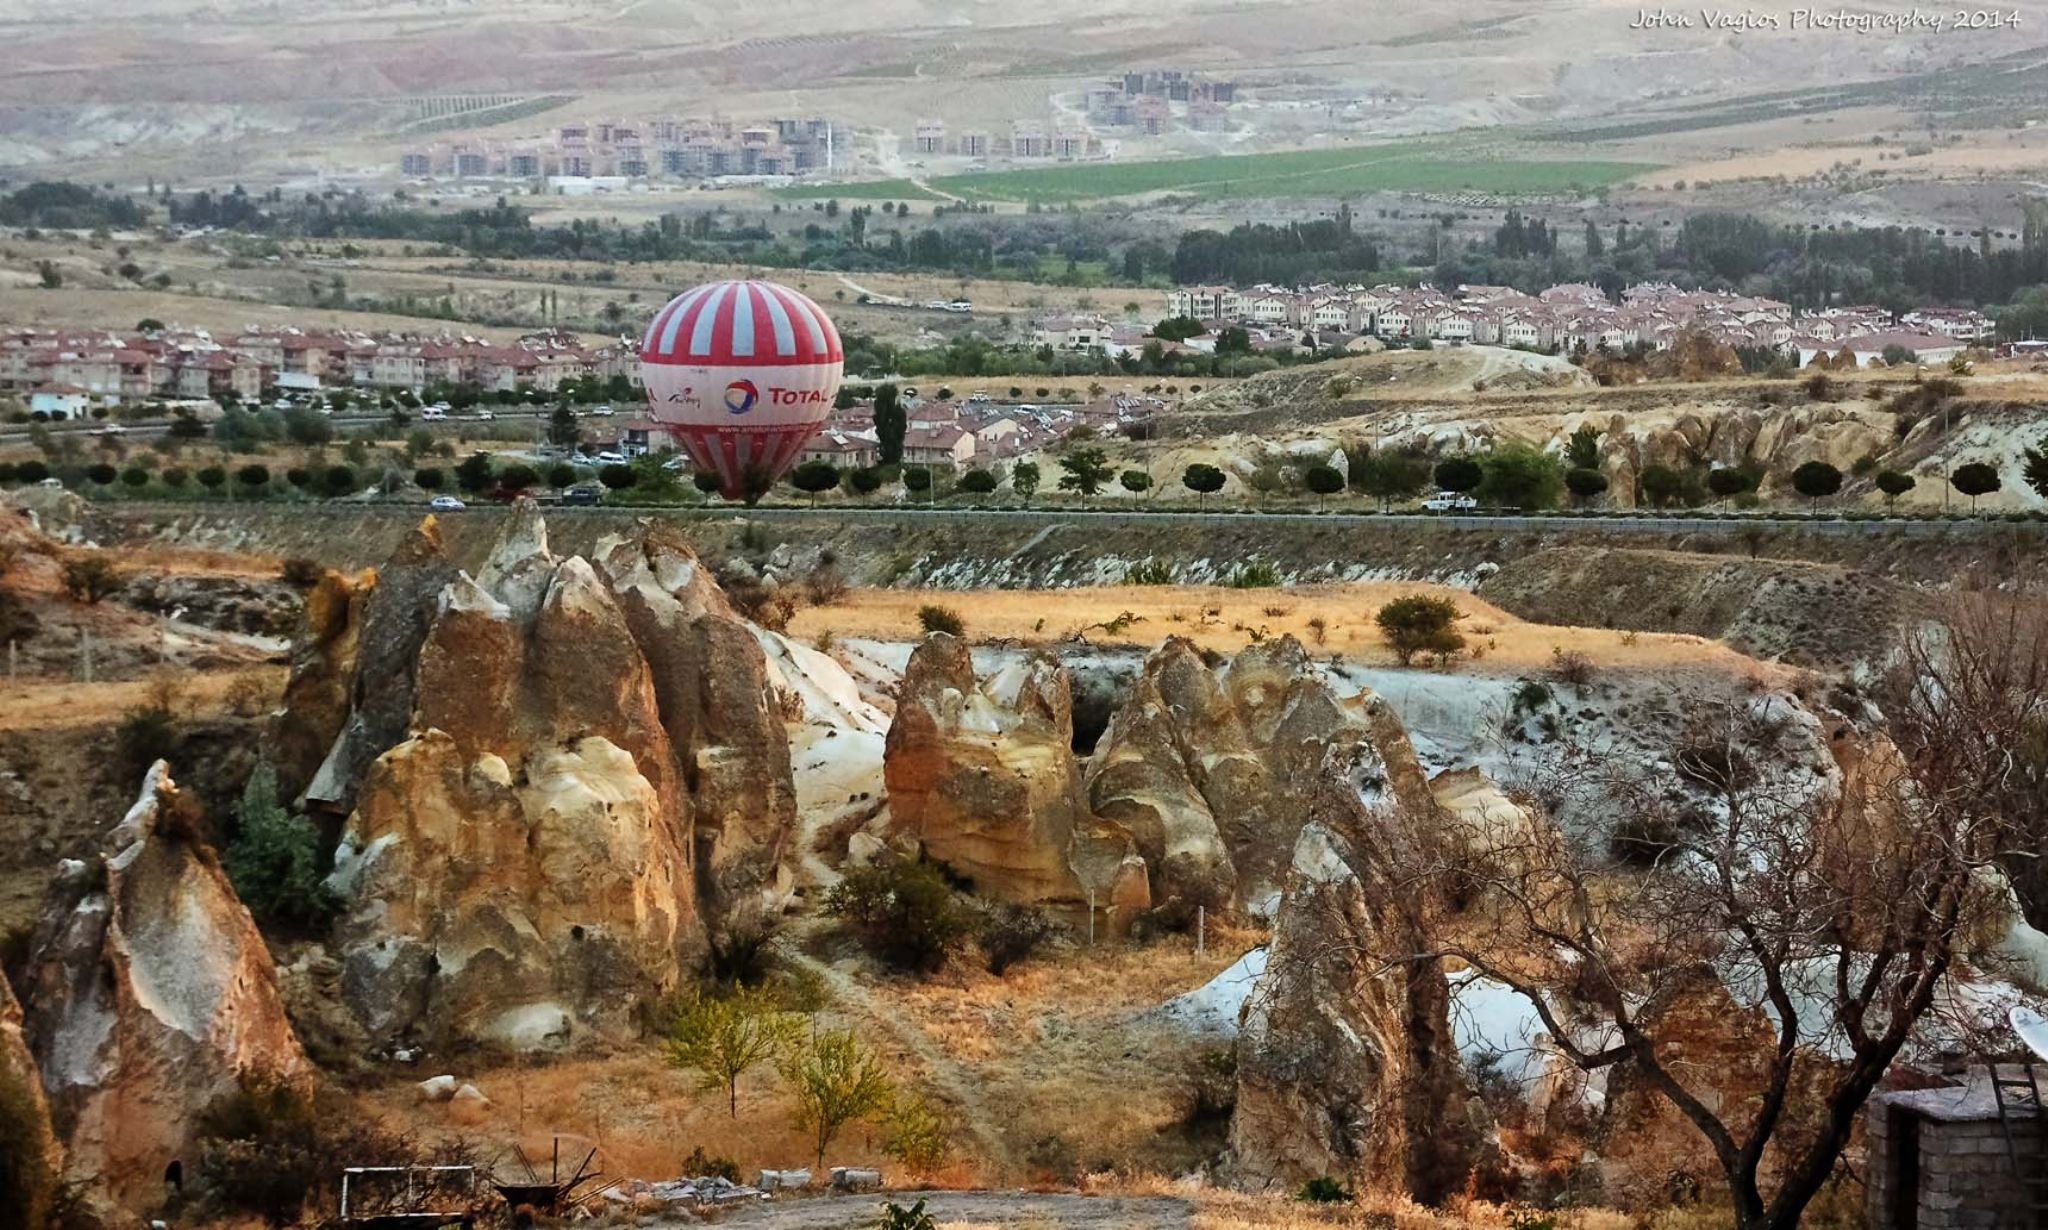 Balloon landing by JohnVagios